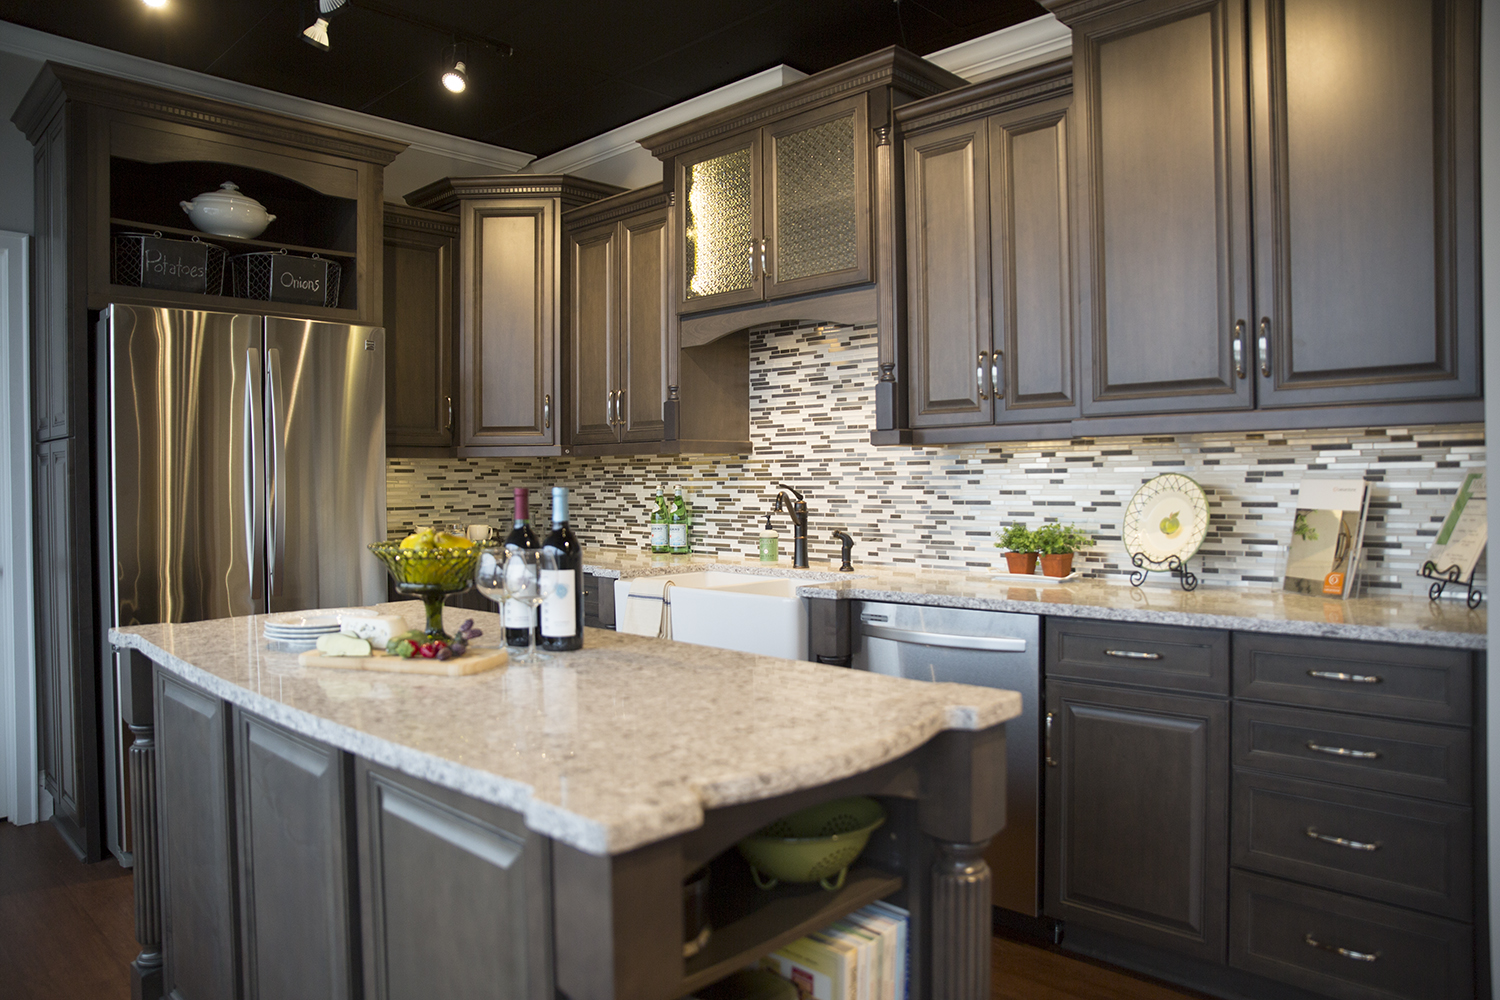 marsh furniture gallery kitchen amp bath remodel custom kitchen cabinets melbourne fl dmdmagazine home